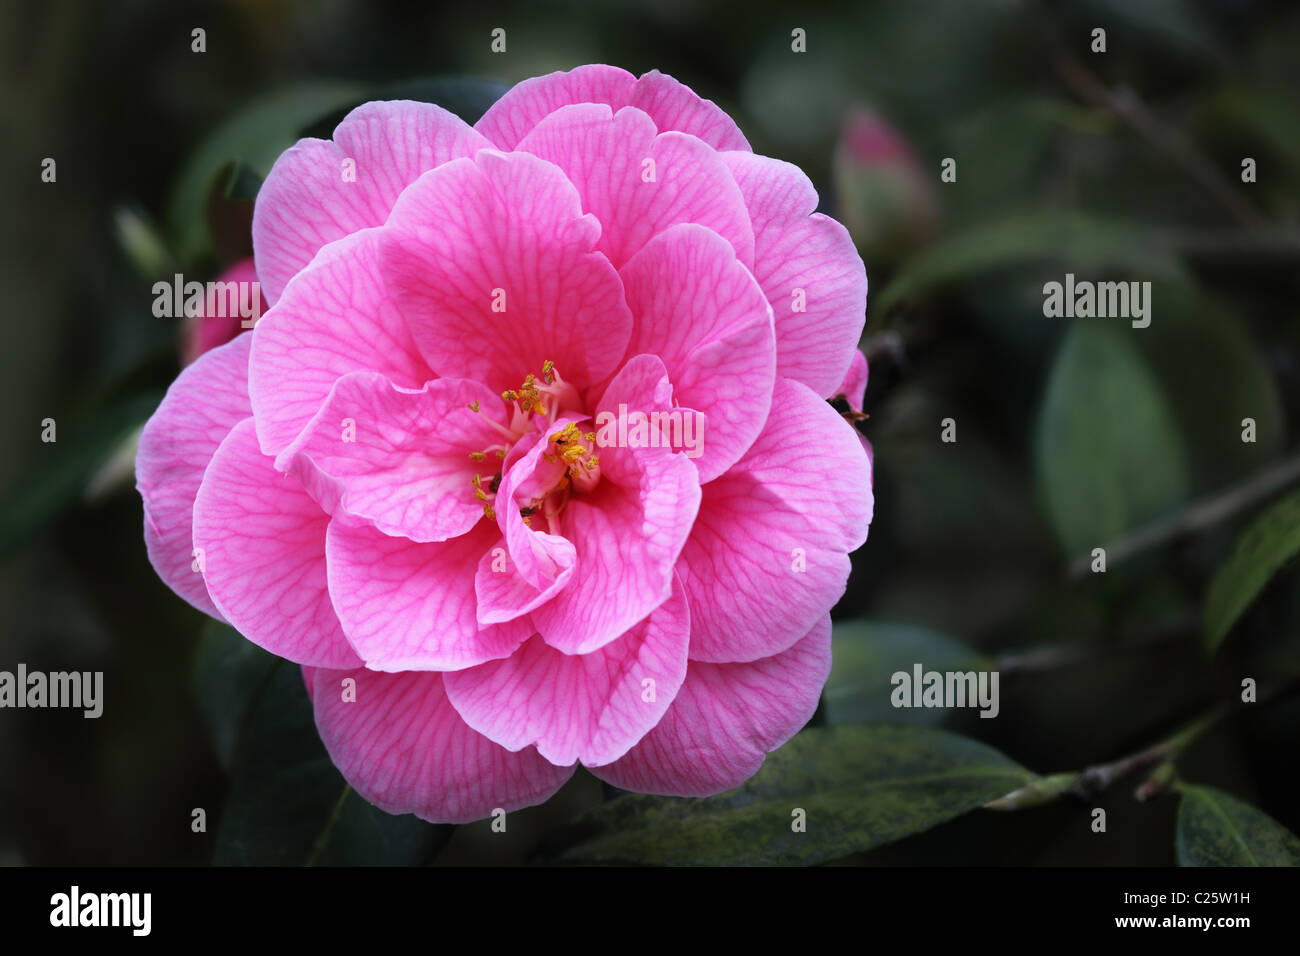 Close up of a perfect Pink Camellia against a dark blurred background - Stock Image